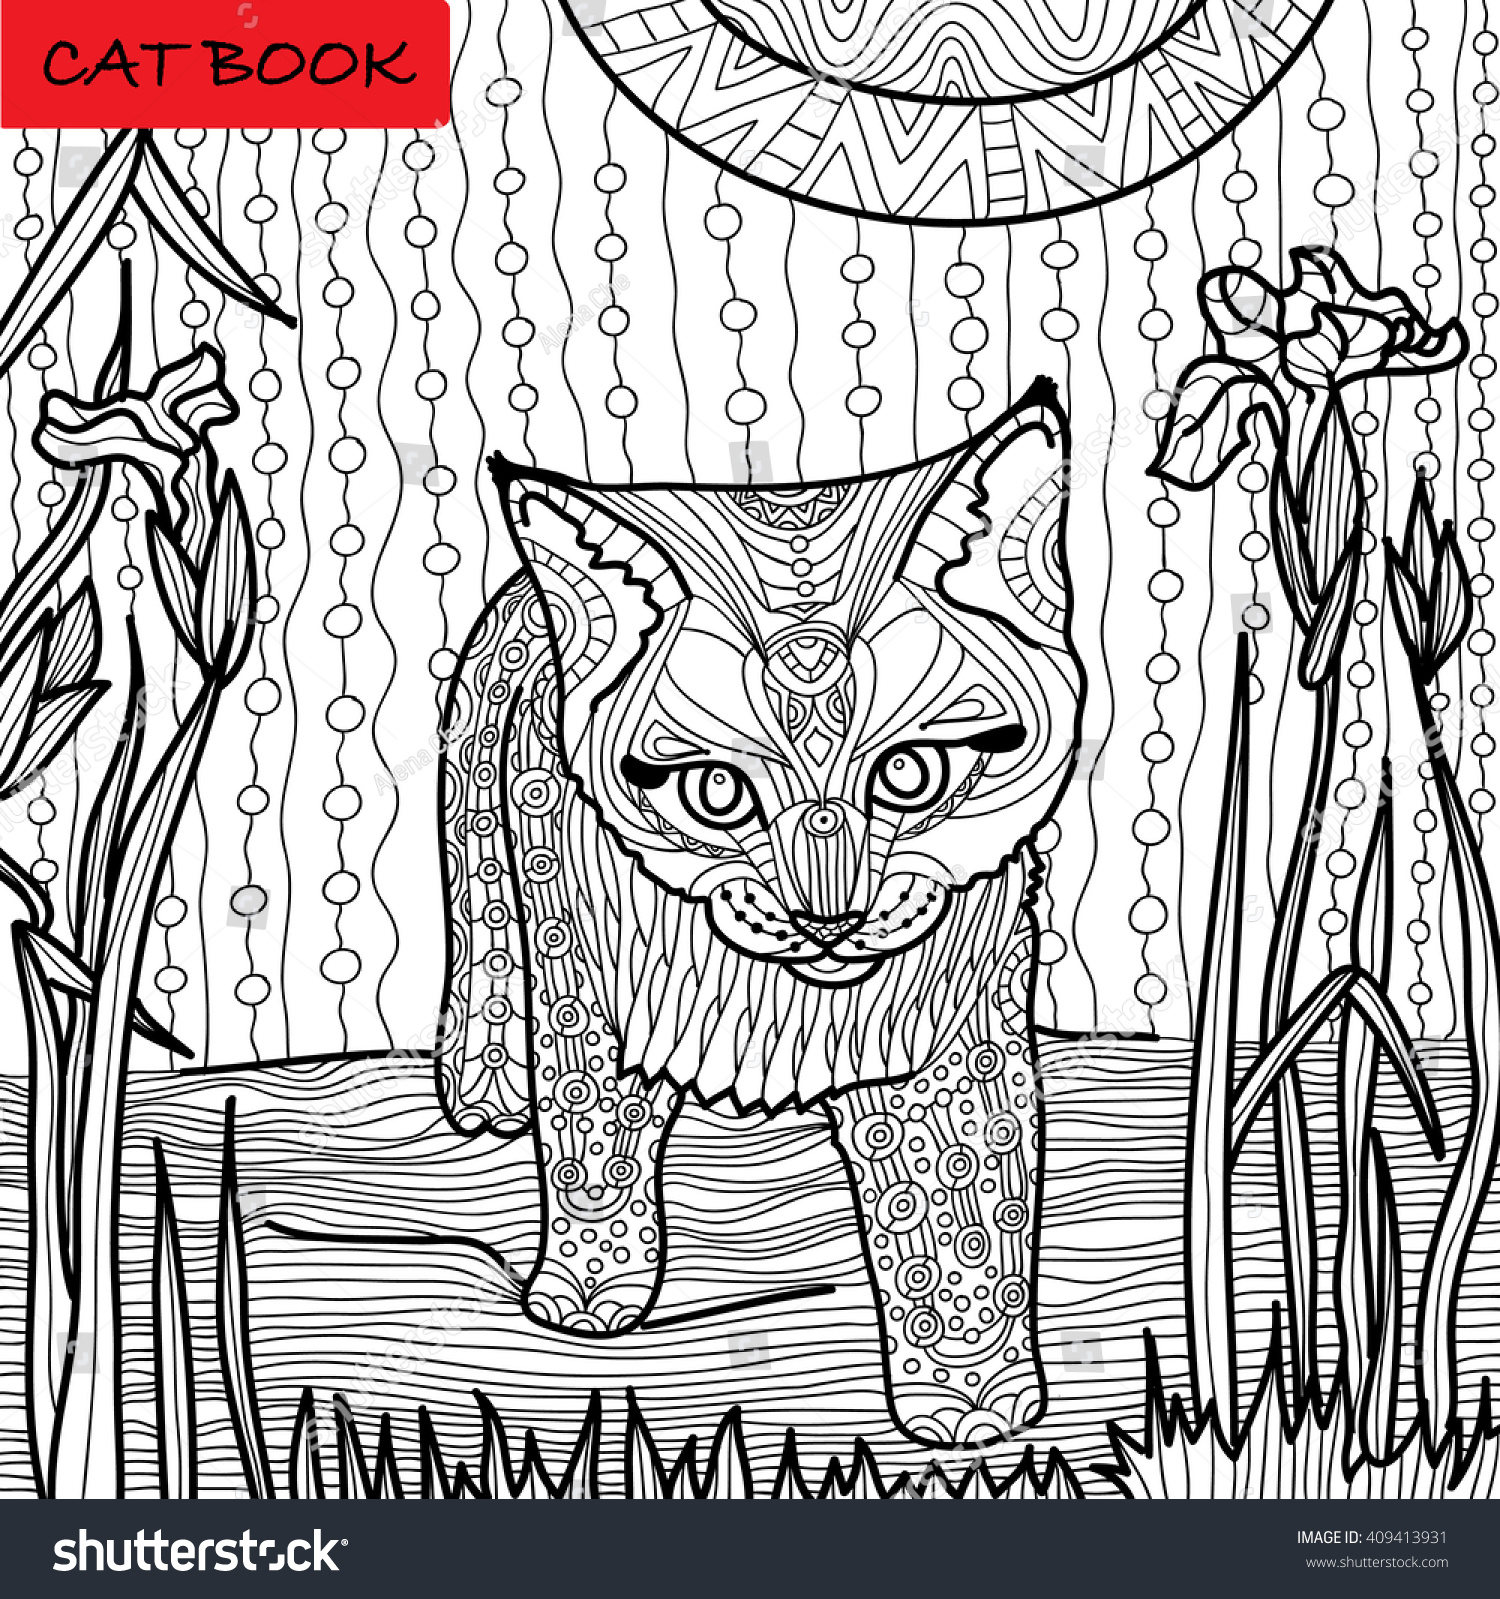 Coloring Page Adults Surprised Kittens Great Stock Vector HD ...